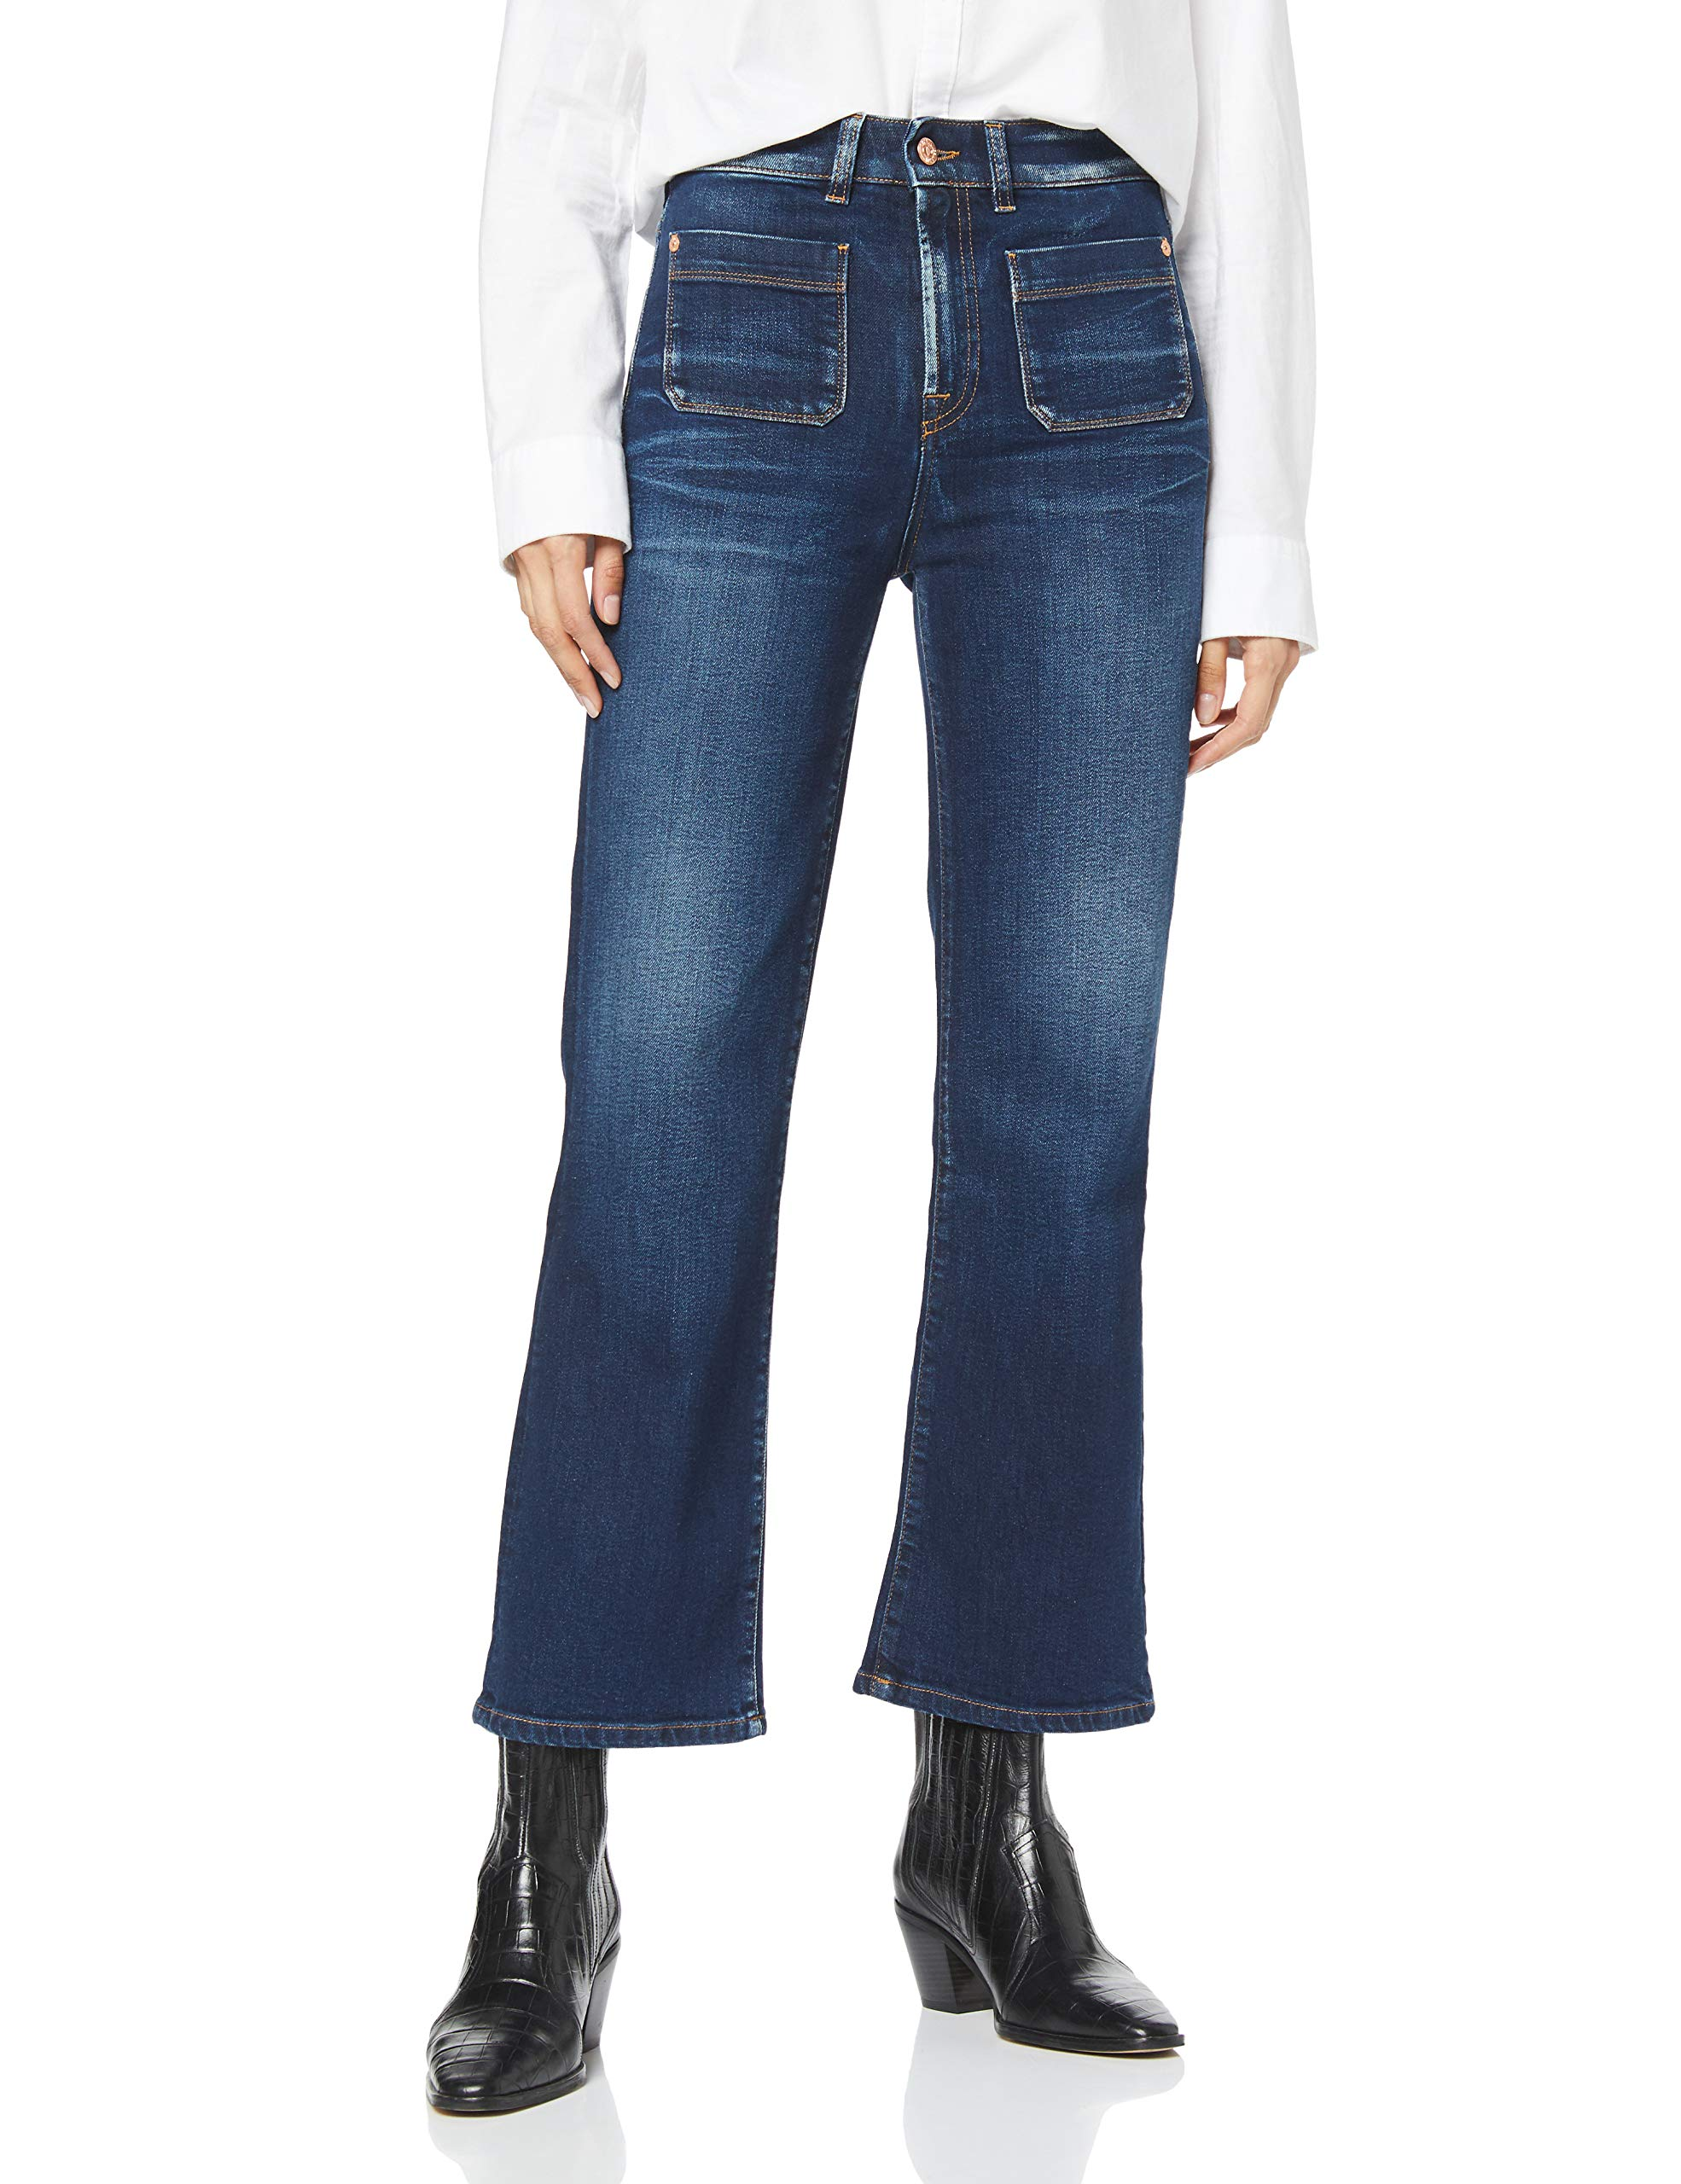 0lo46taille Boot Jean Vintage Fabricant30Femme All Hw BootcutBleu Cropped Seven Mankind Sagl International For Canyon vmNnw08O